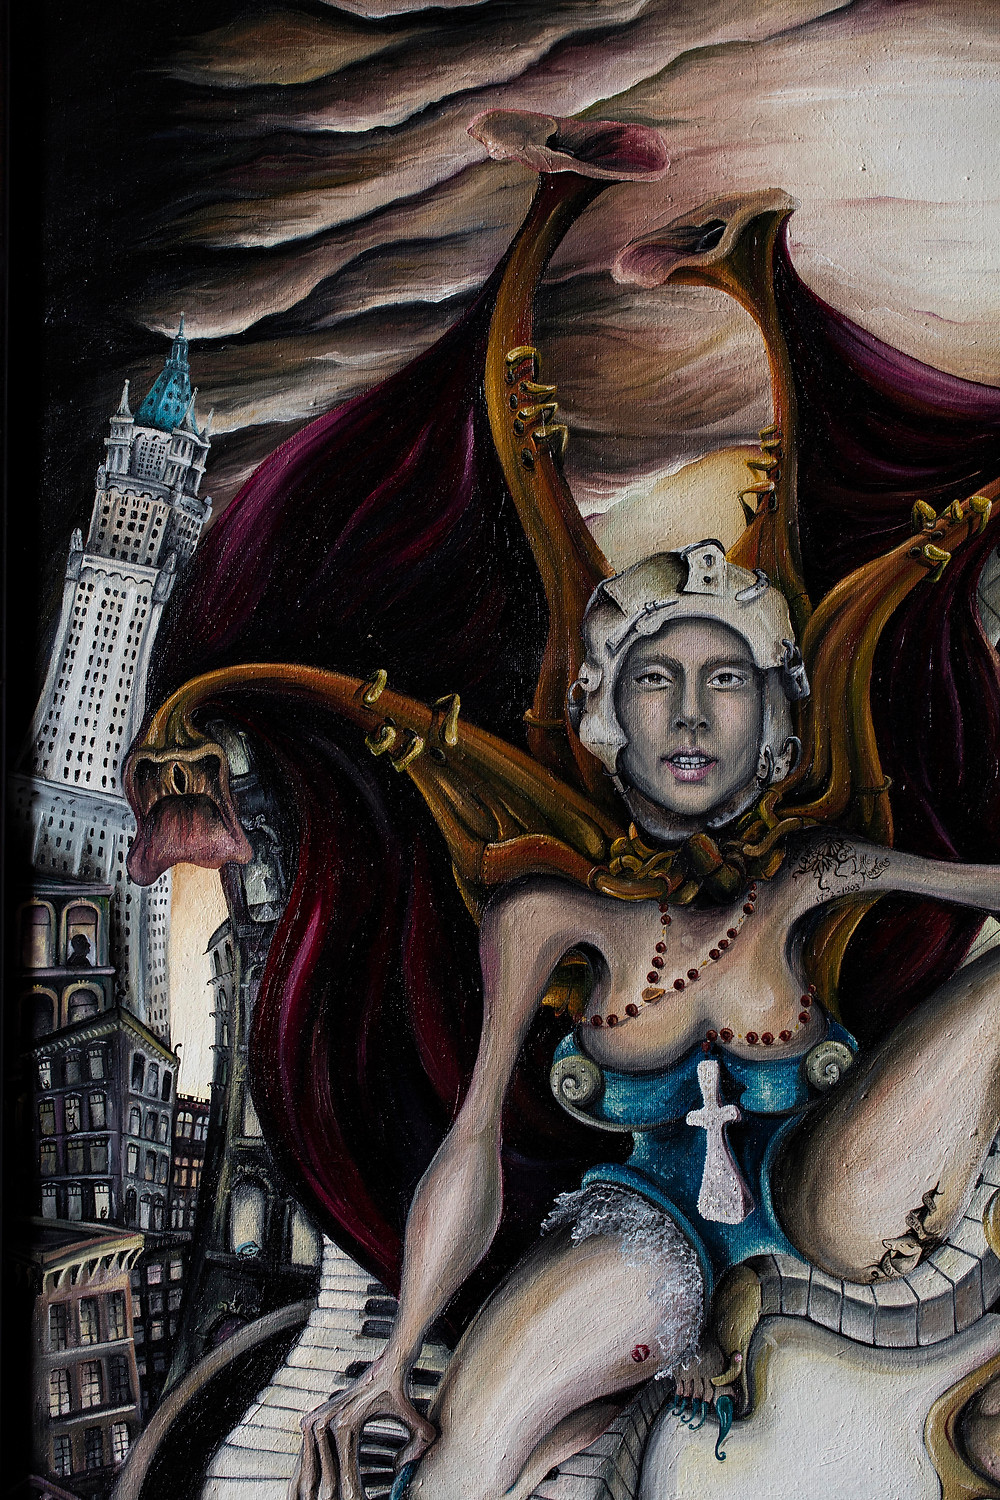 Welsh Artist Julia's Painting depicting the life and music of Lady Gaga created in 2012, here you see her face from beneath the glass mask, with her rosary and tattoos that mean a lot to her. One side Marilyn Monroe the other Marilyn Manson.